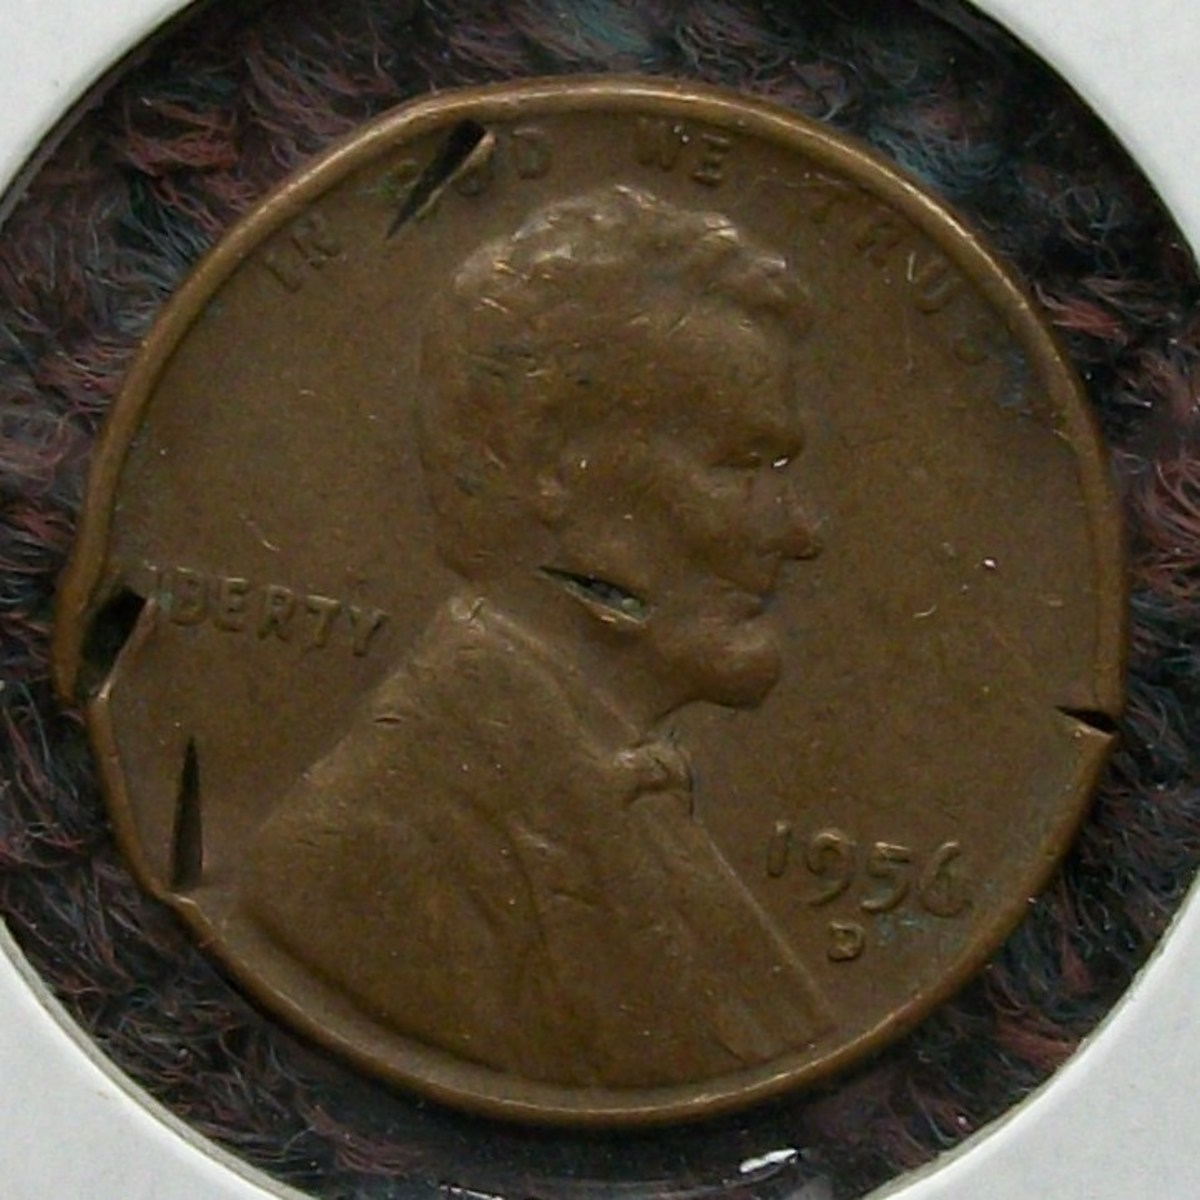 Close up of Obverse view...